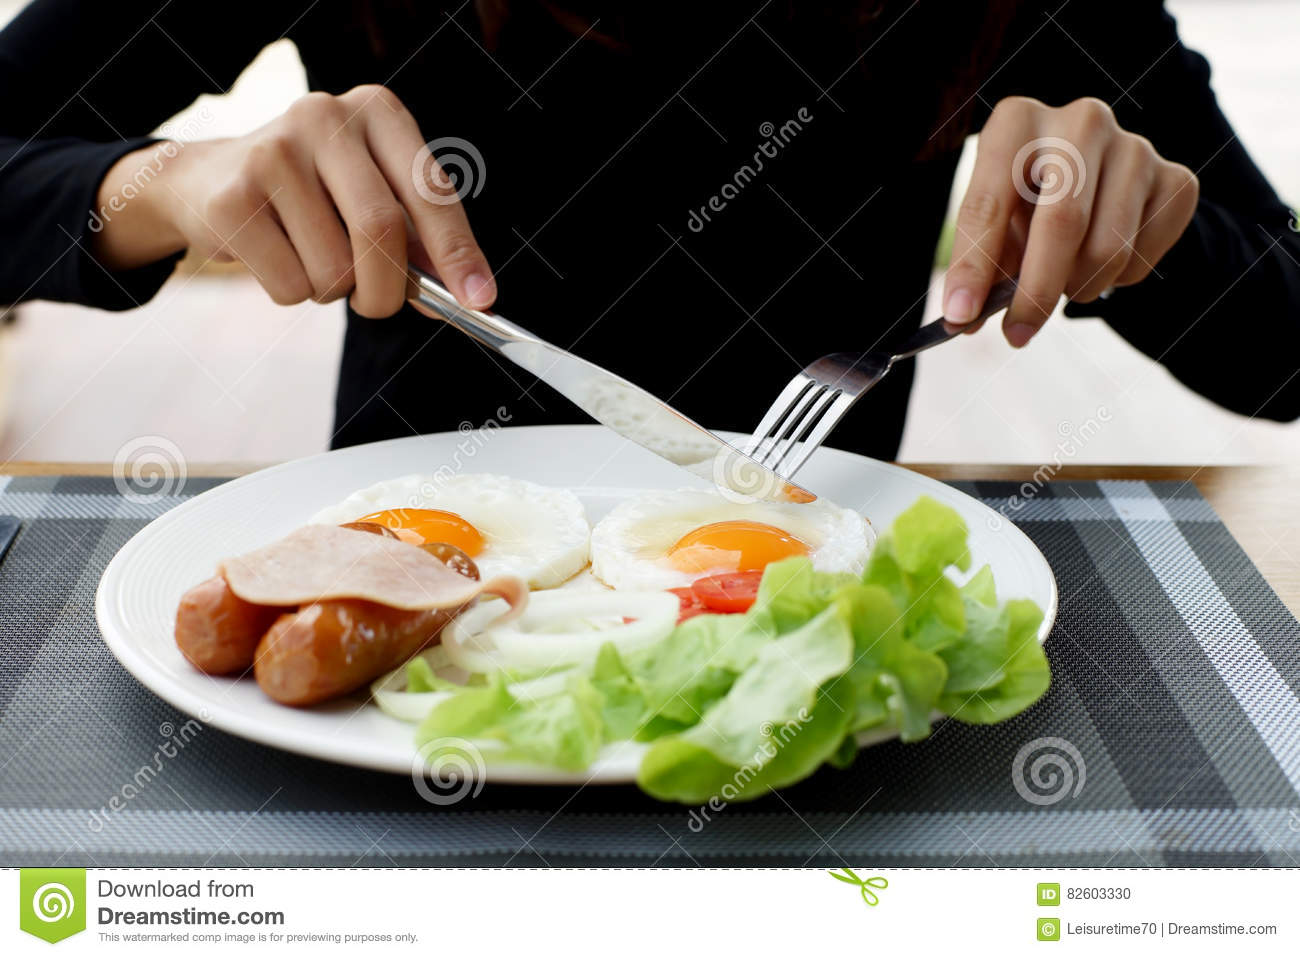 Woman hands holding knife and fork during eating breakfast